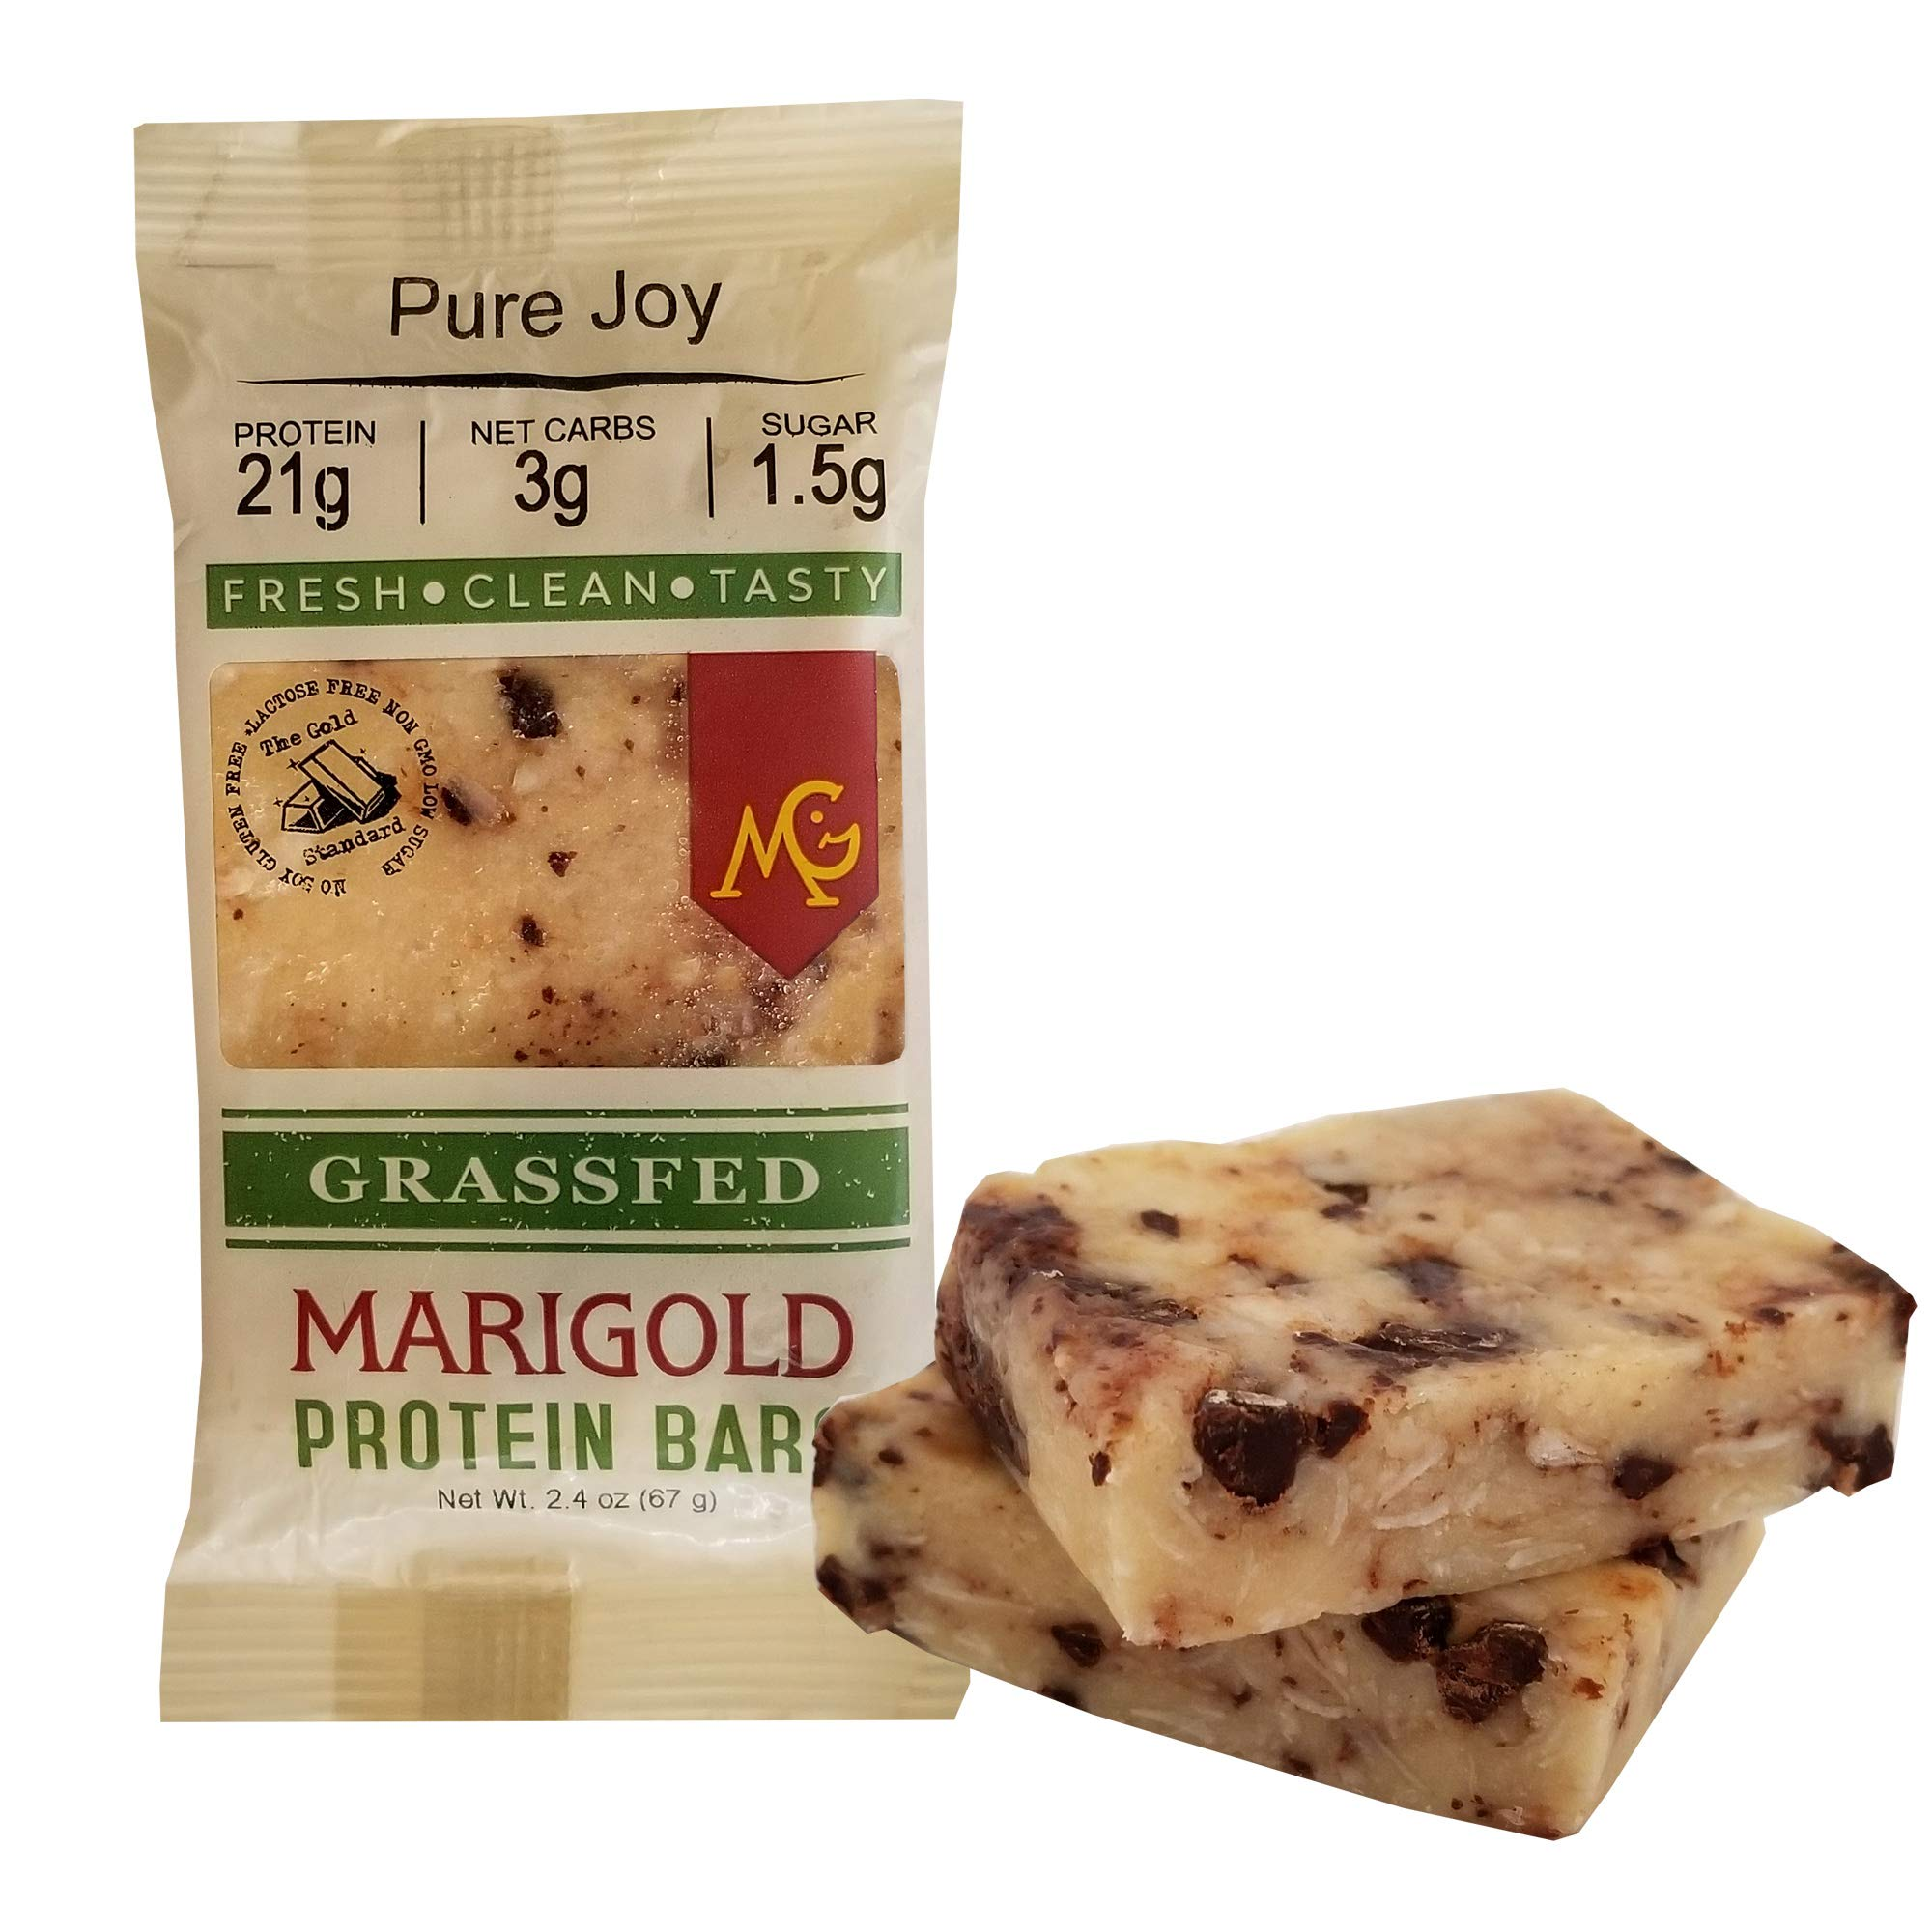 Keto (2-3 NET CARB) Protein Bar by MariGold - Amazing Taste Ketogenic Snacks - Organic Fats, 1 g Sugar, 21 g Protein GRASS FED Whey - Non GMO. Made Fresh, Ships Fresh. (12 bars) by MariGold Bars (Image #8)